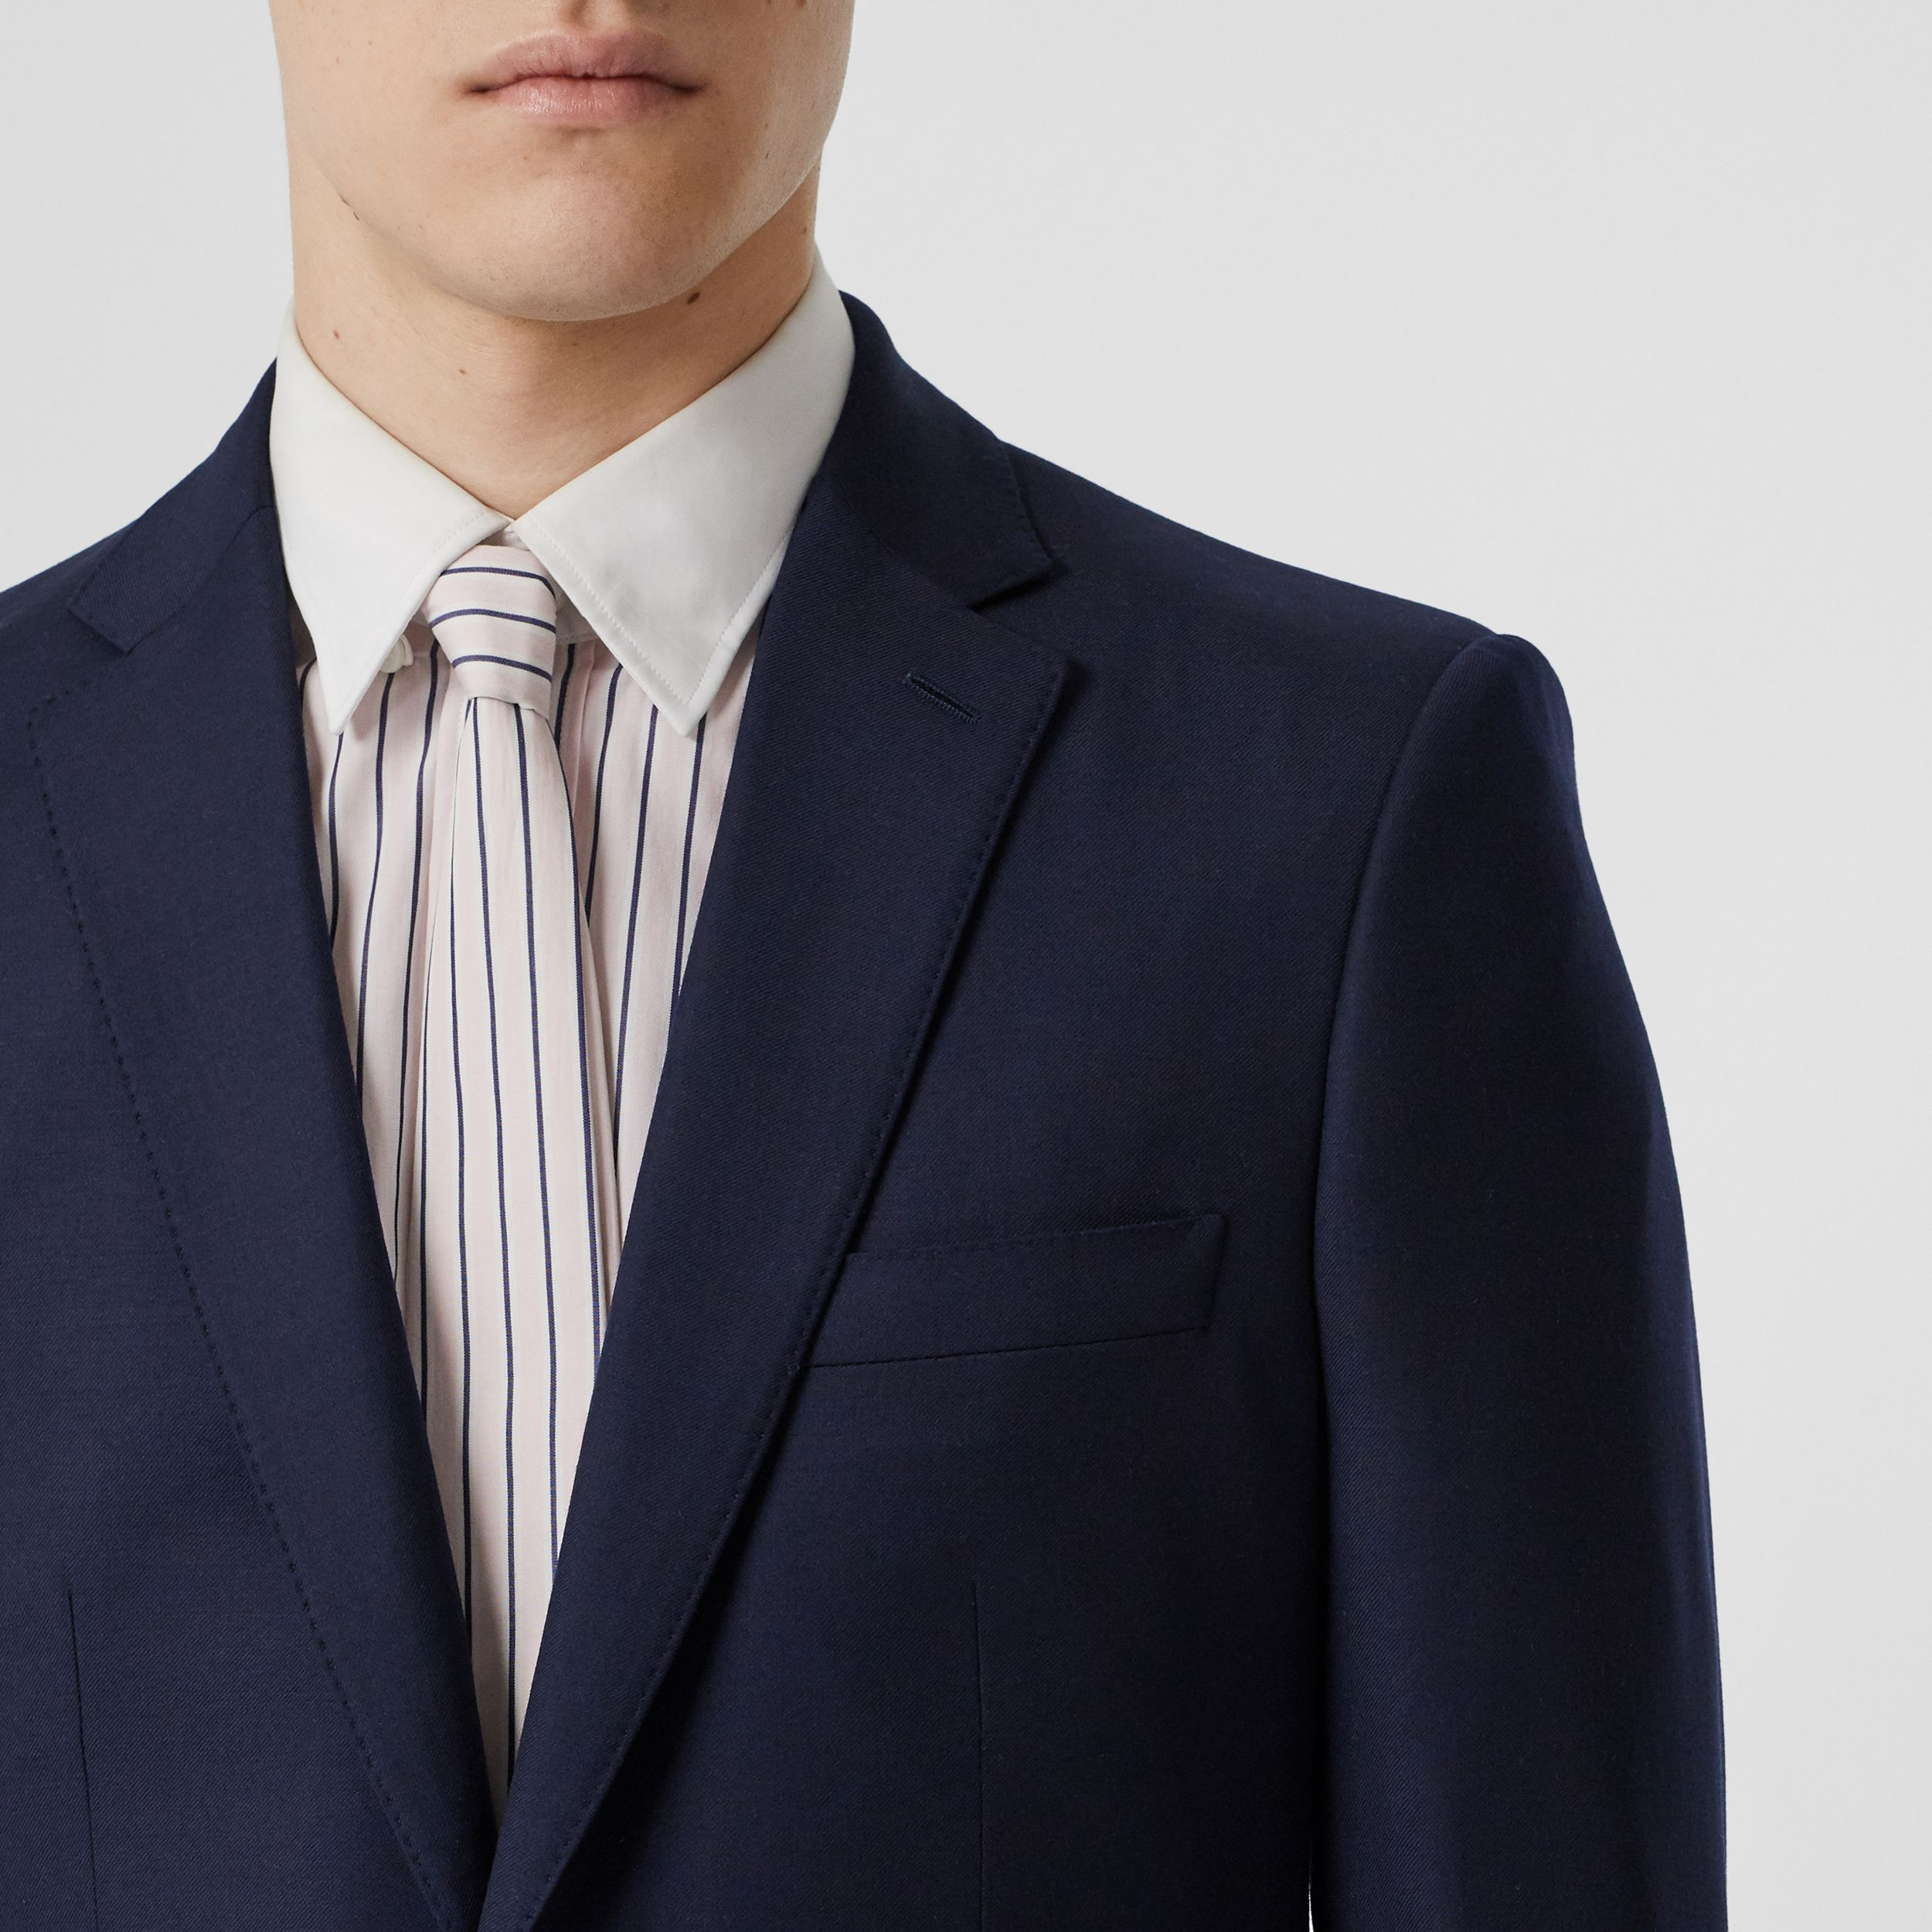 Classic Fit Wool Suit in Navy - Men | Burberry - 2